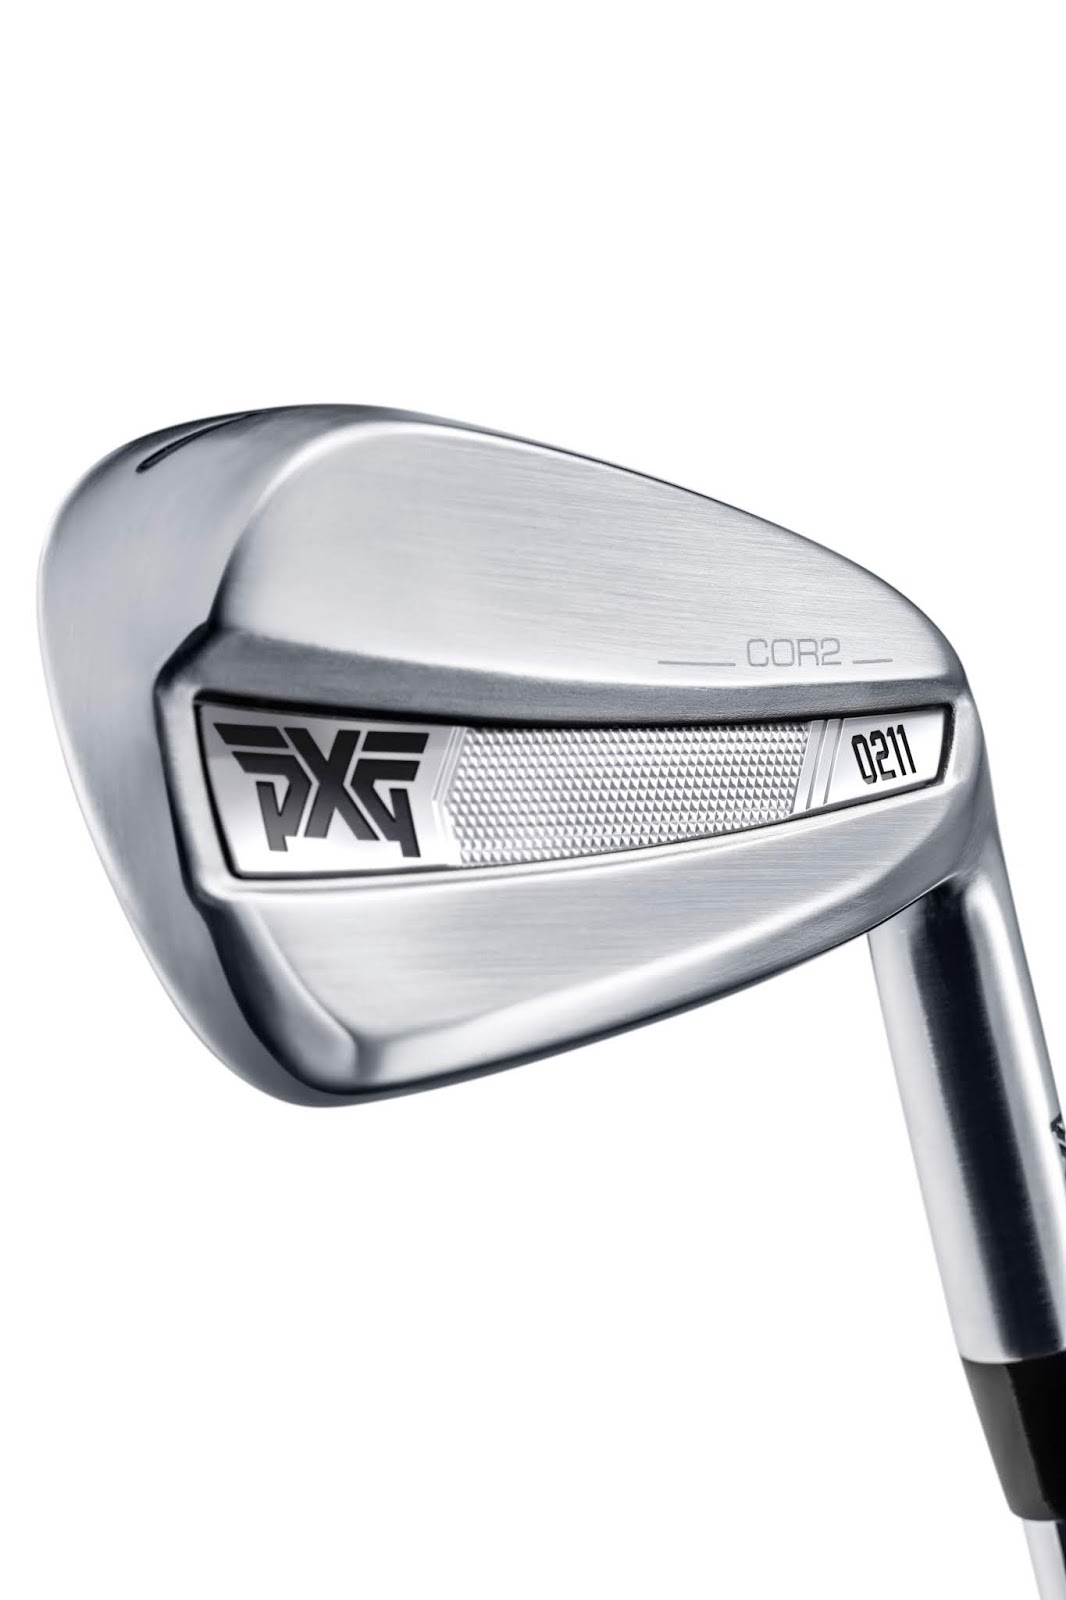 28f52aa63f21c Since selling its first golf club in 2015, PXG has catered to the top of the  market with its high-performance technology. In 2018, on the heels of  launching ...